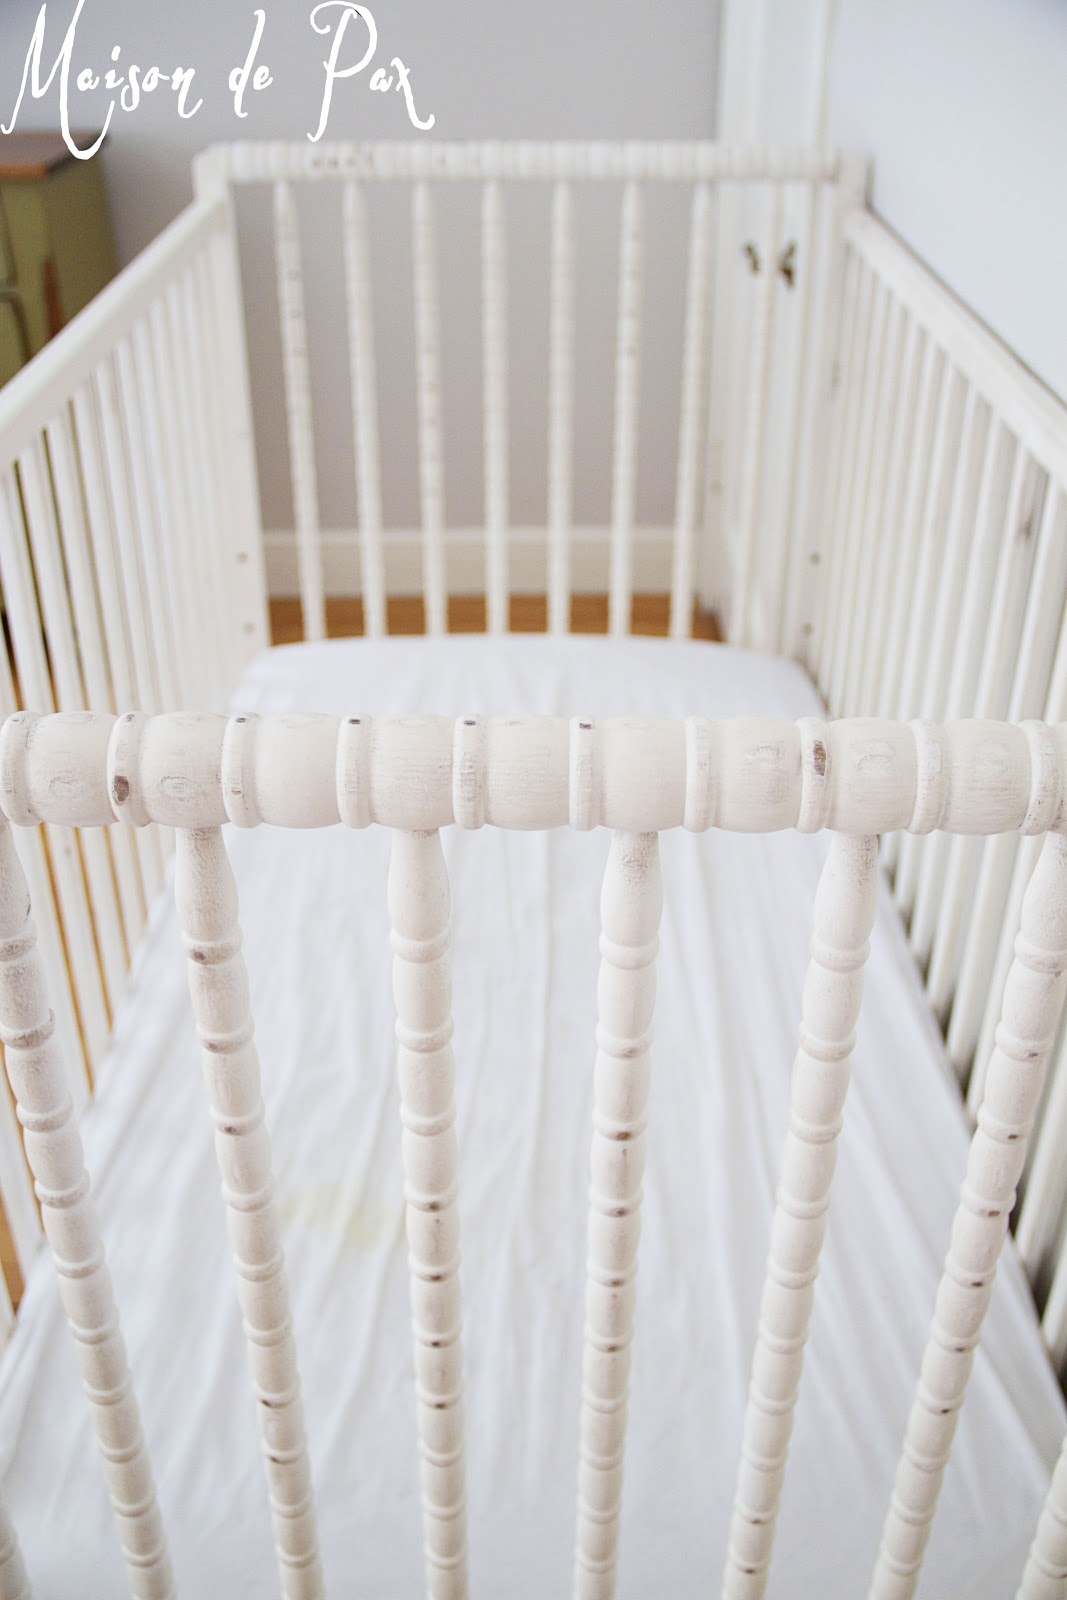 for bean safe after cribs harvey prepping baby ever makeover the paint crib diy